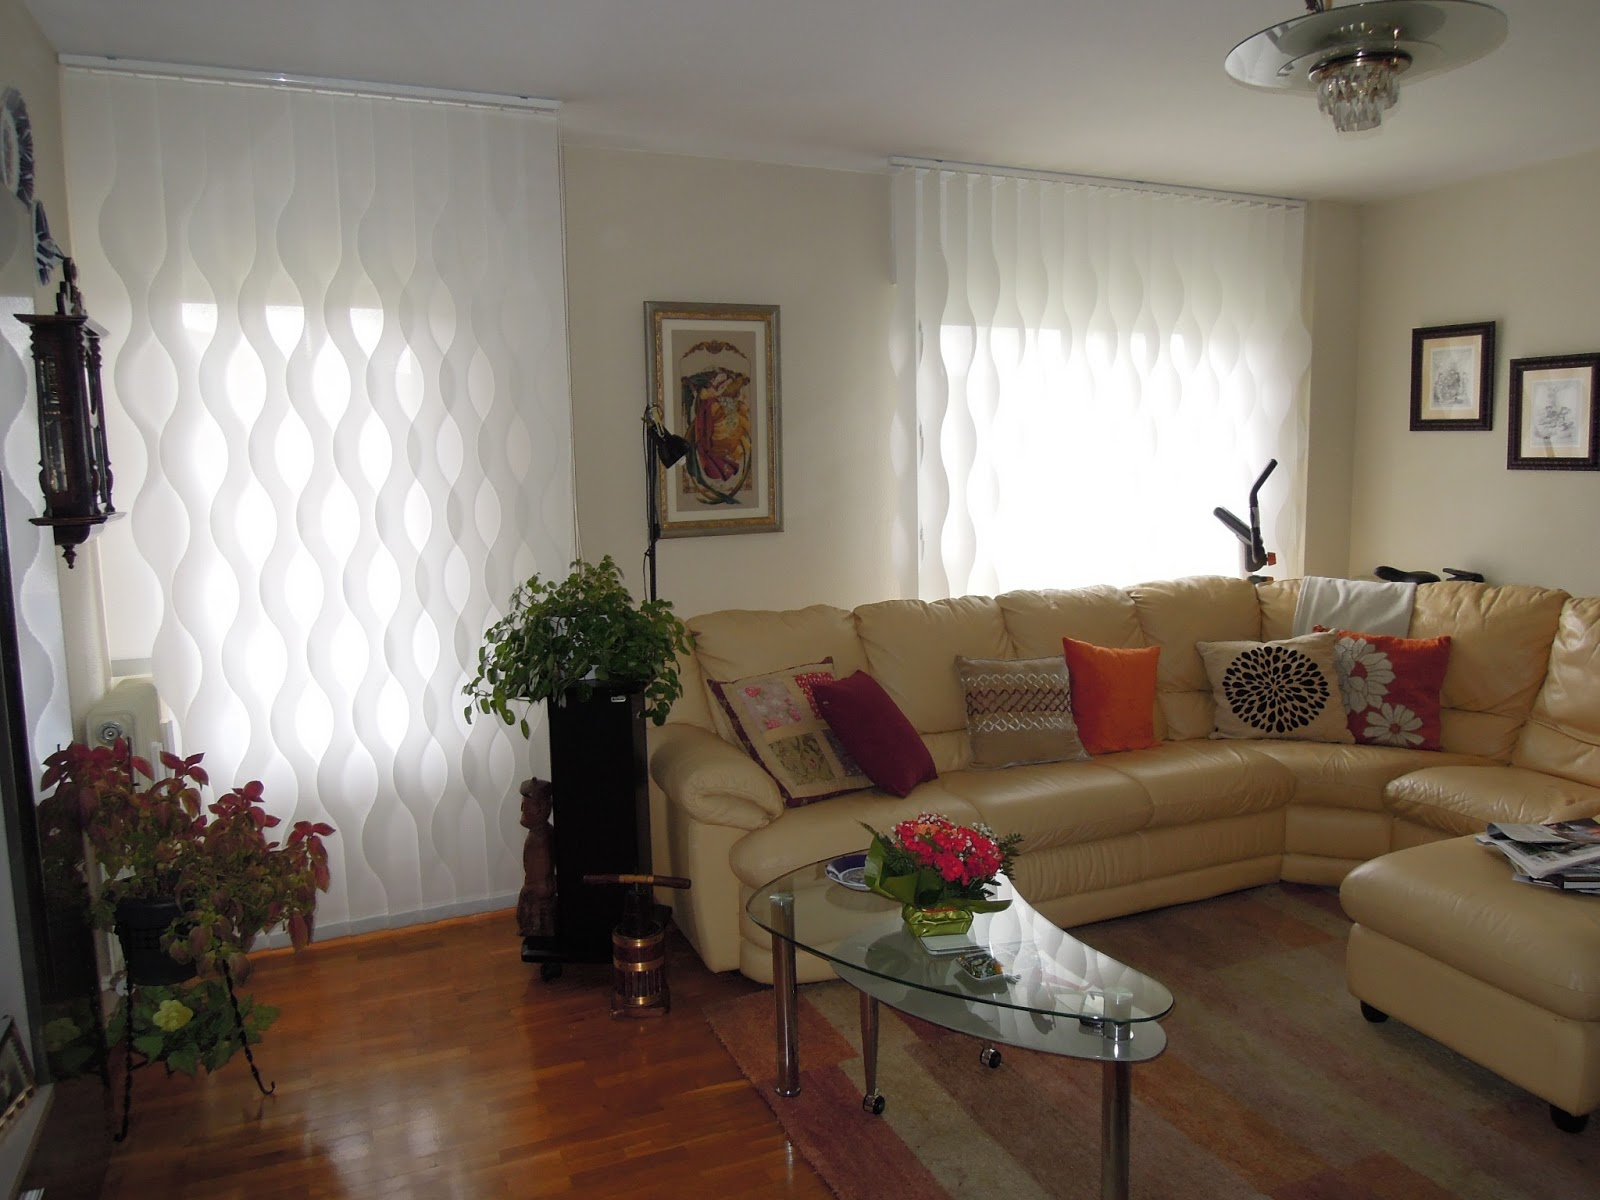 Cortinas Salon Leroy Merlin Cortinas Screen Leroy Merlin Estores Verticales